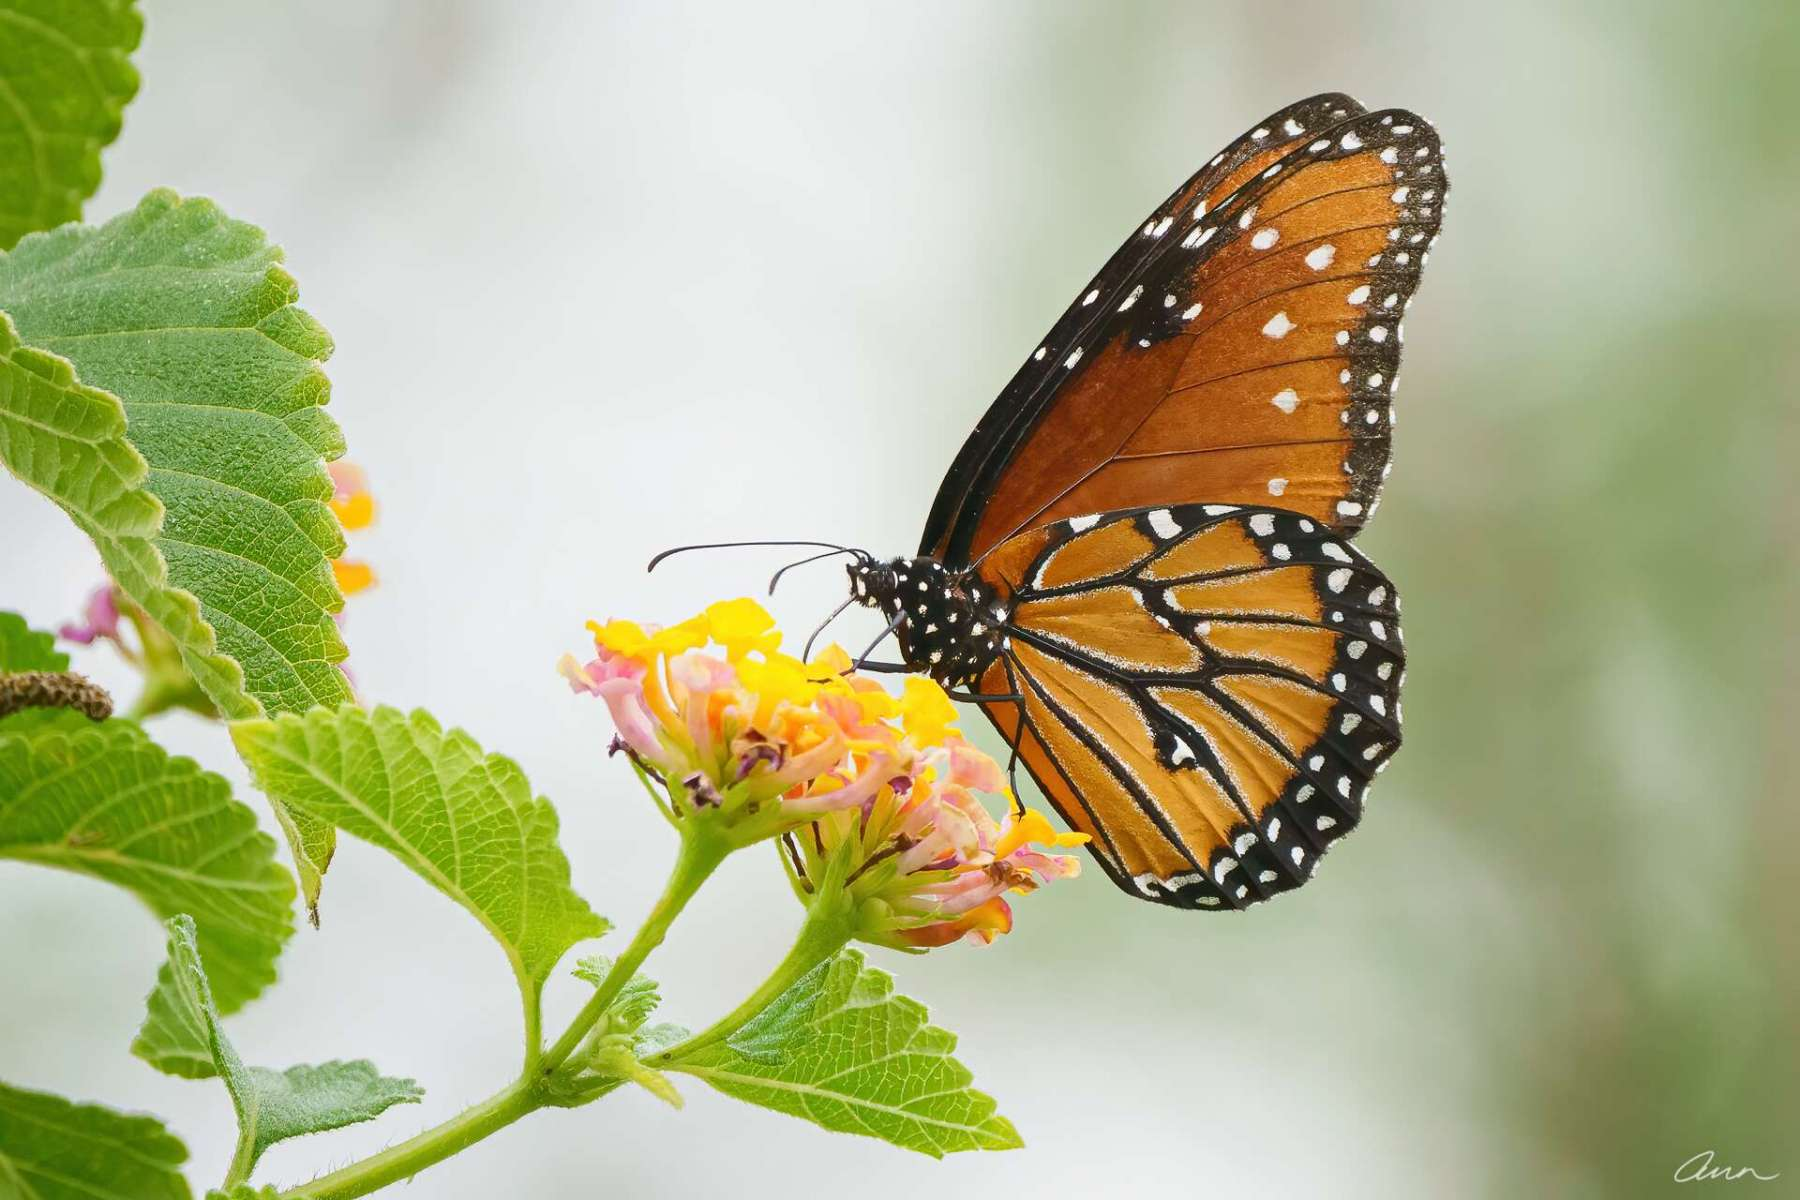 This Queen butterfly is often confused with Monarchs. Imitation is flattery, right?